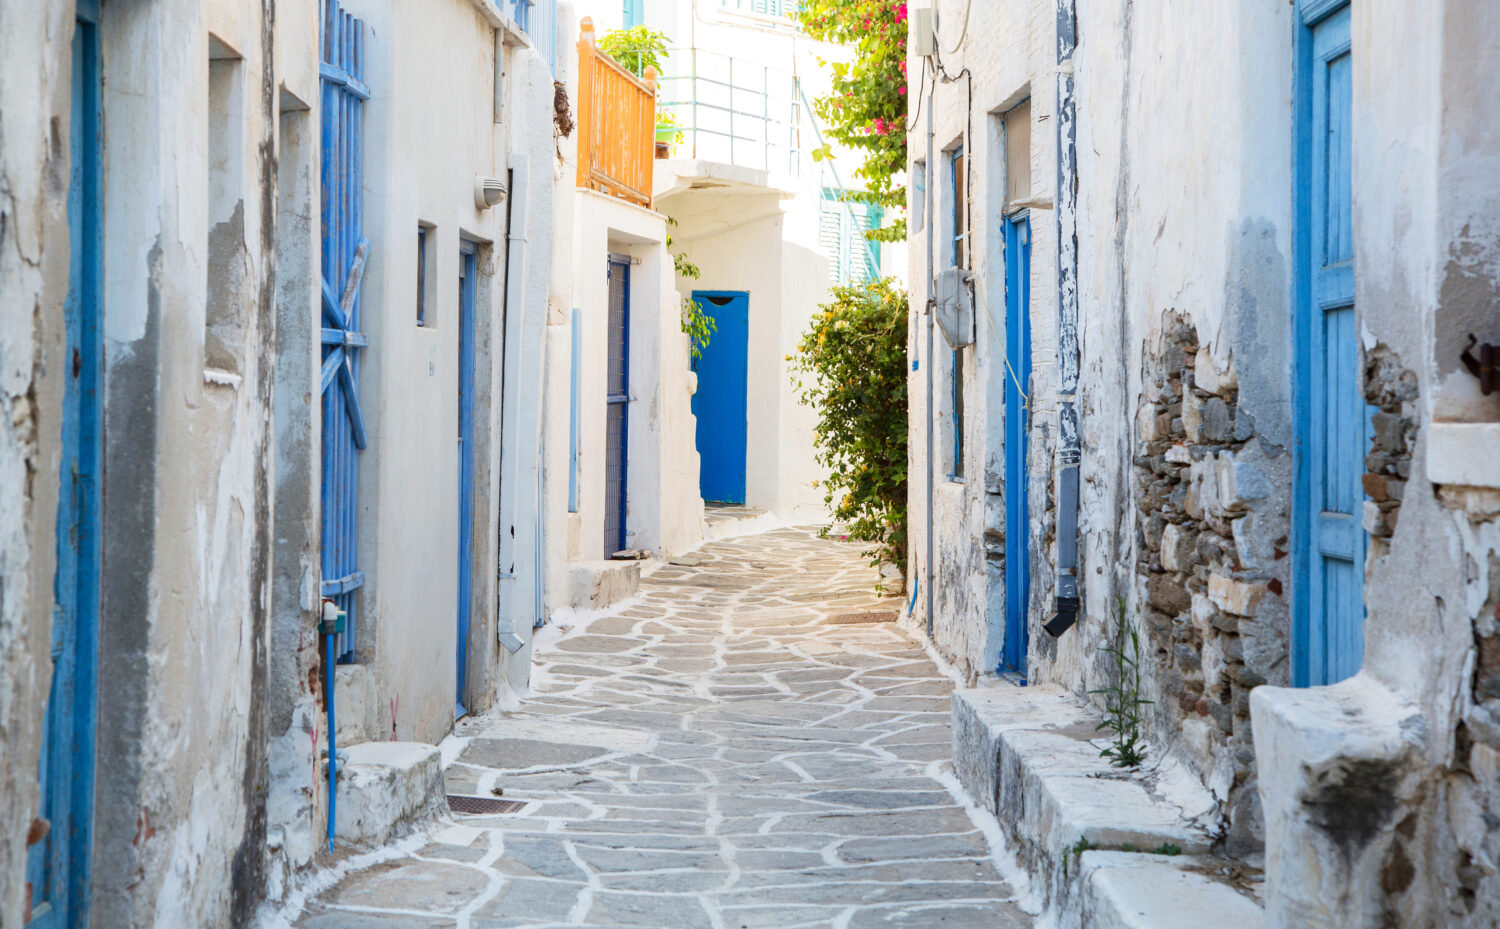 Architecture on the Cyclades. Greek Island buildings with her typical blue doors and white houses in summertime.